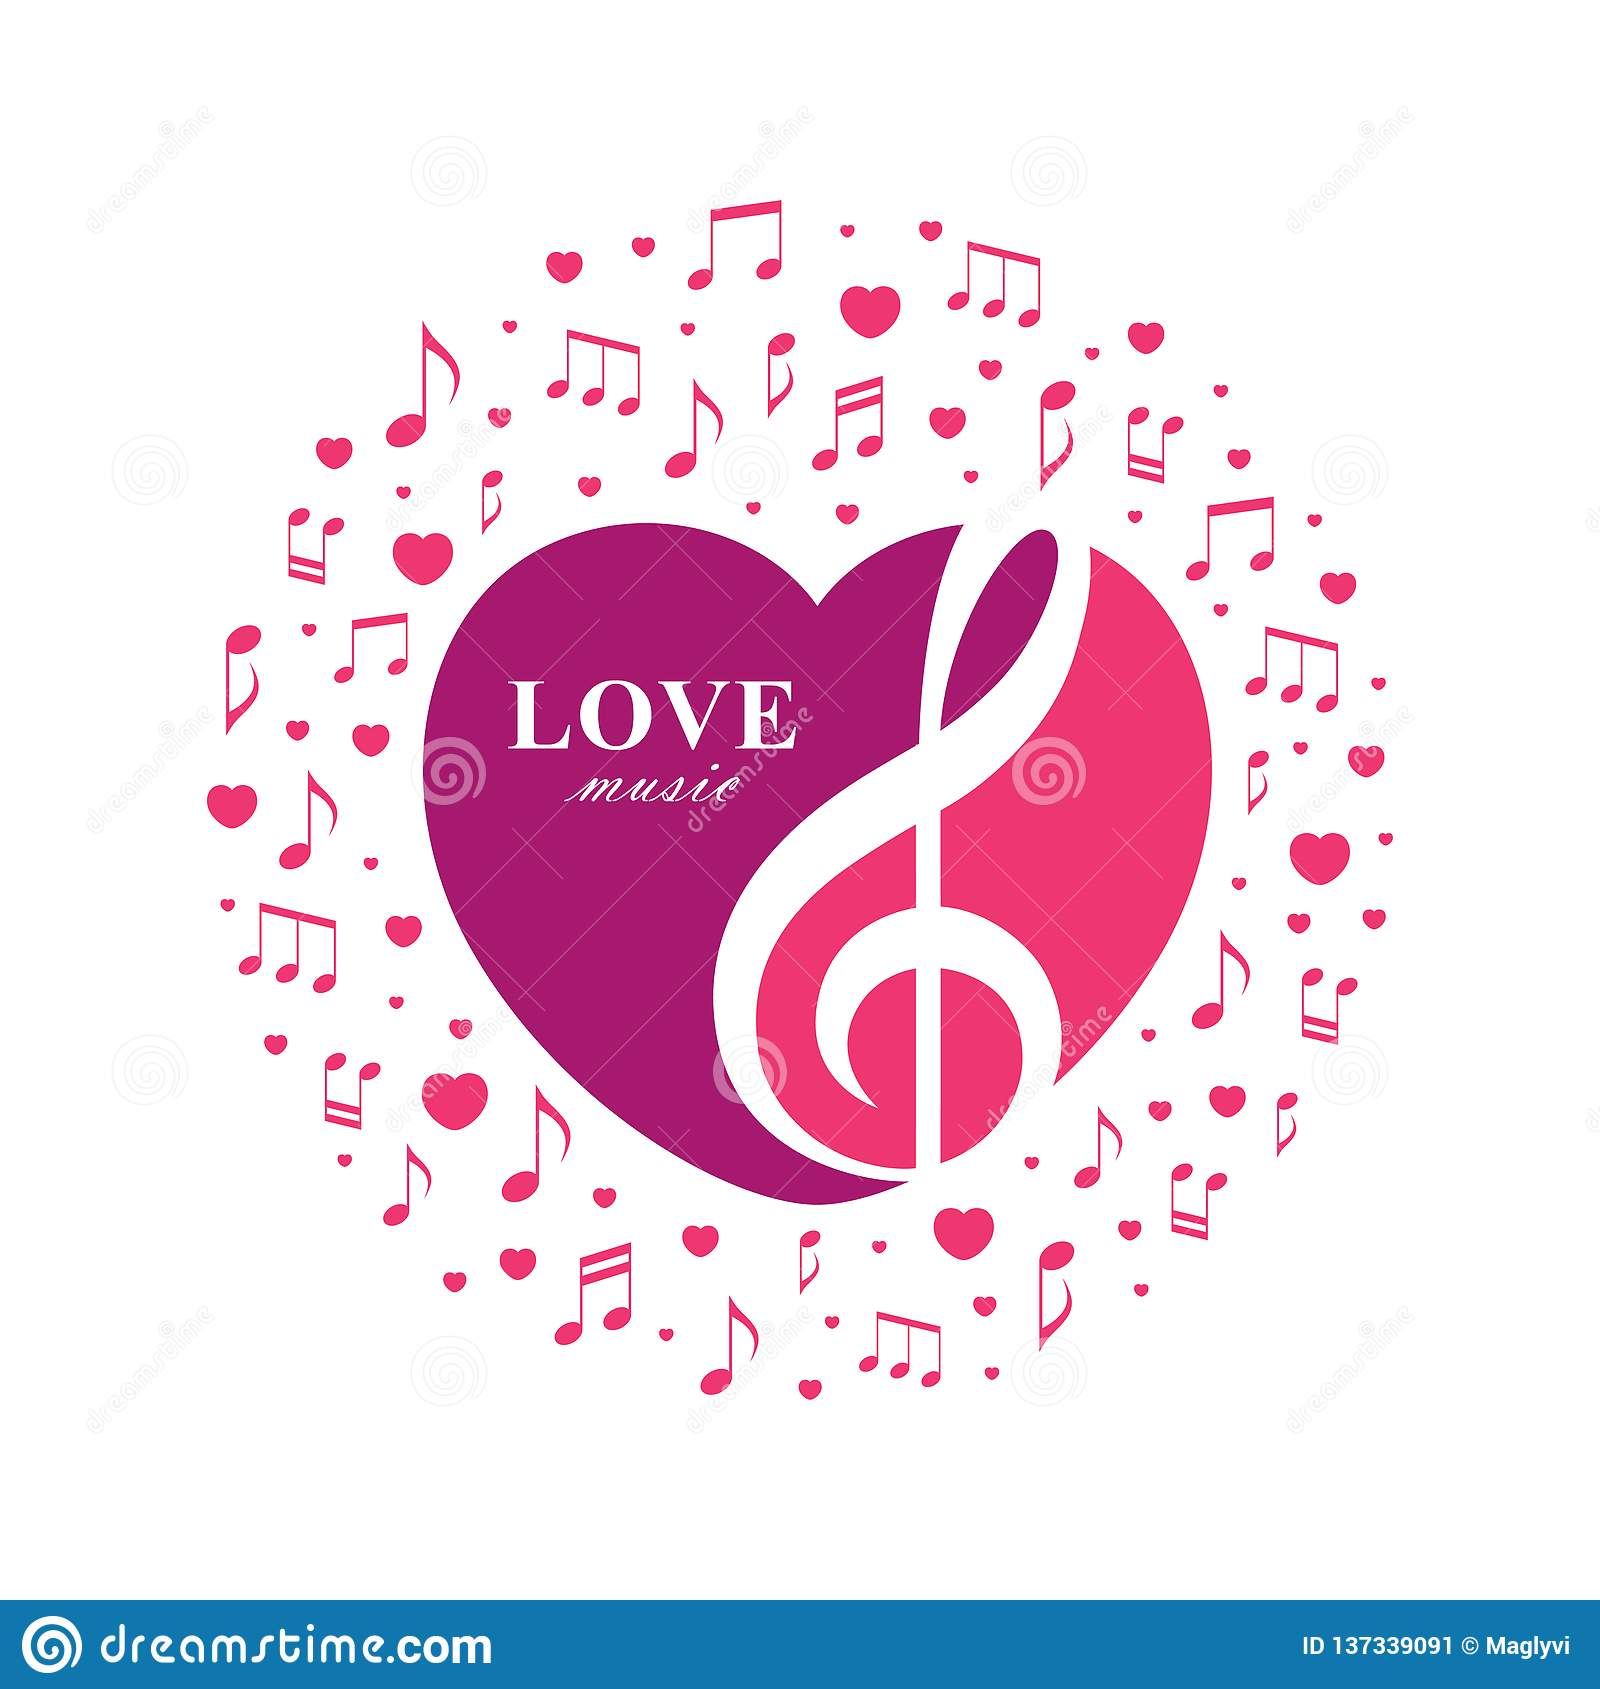 Love Music Illustration With Treble Clef Inside The Heart